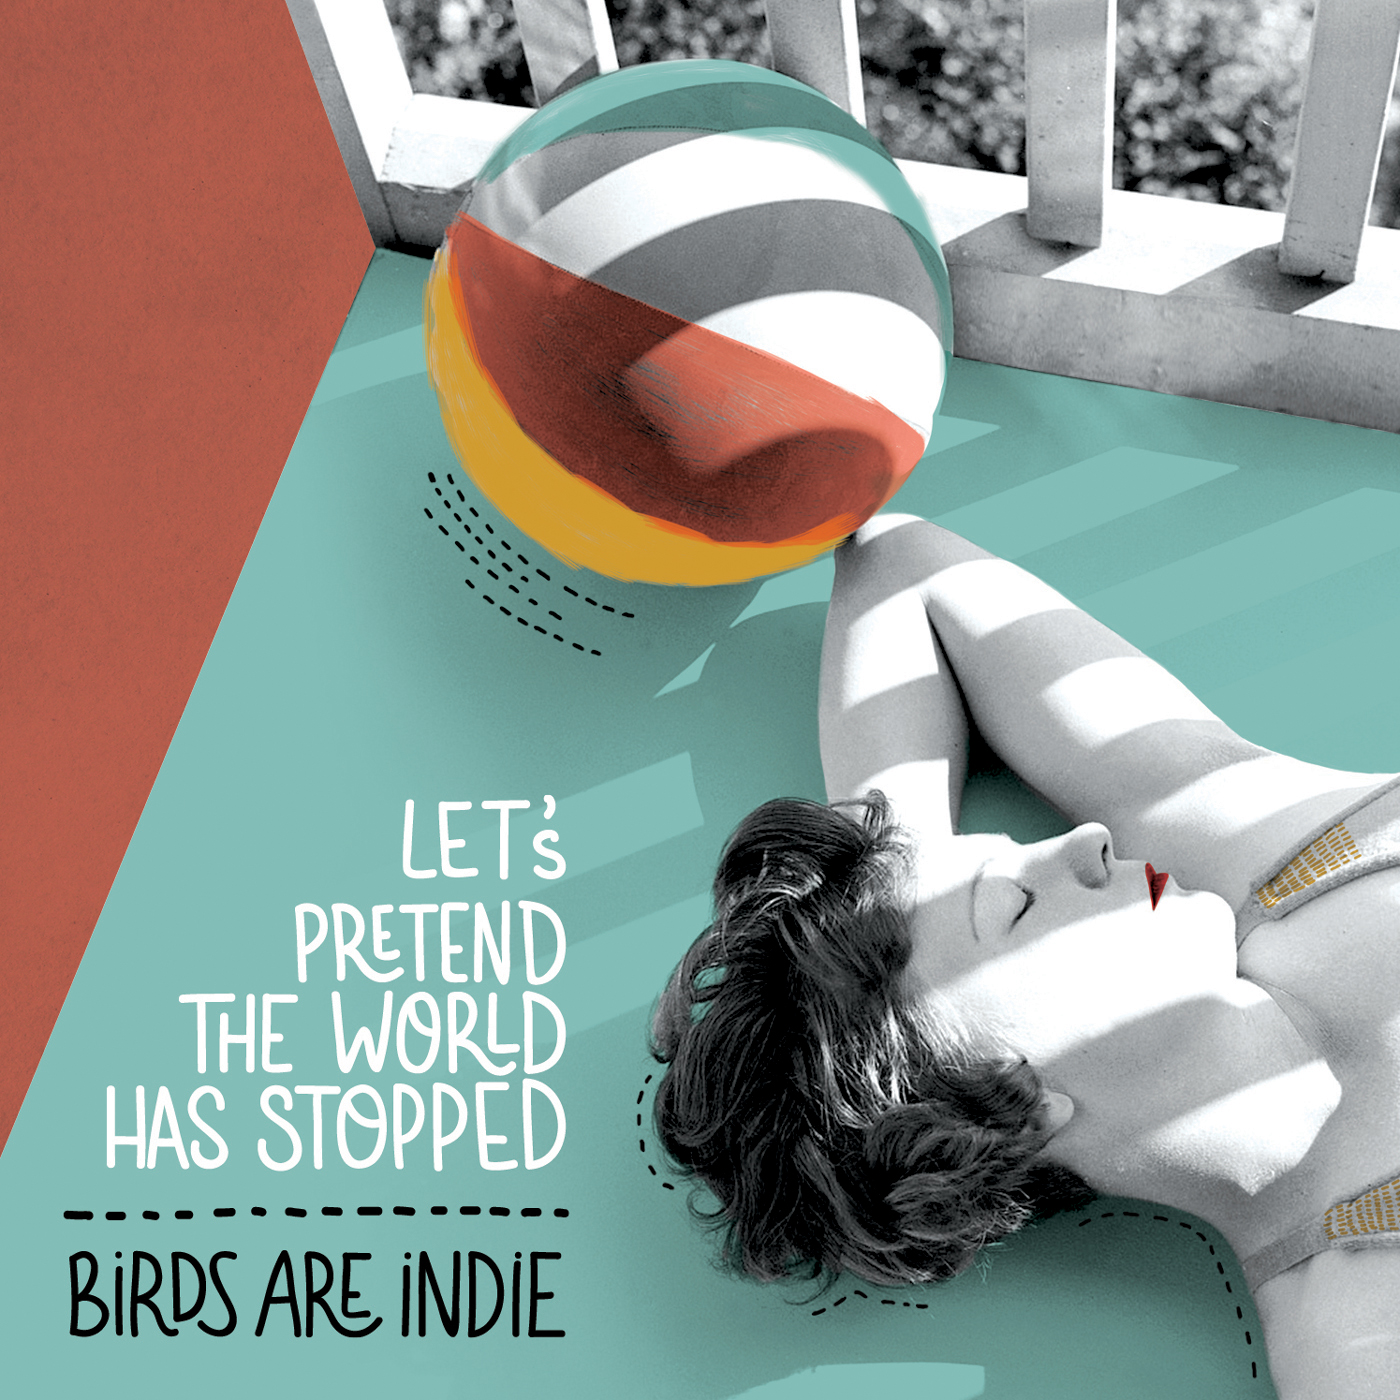 Birds are Indie – Let's Pretend the World Has Stopped